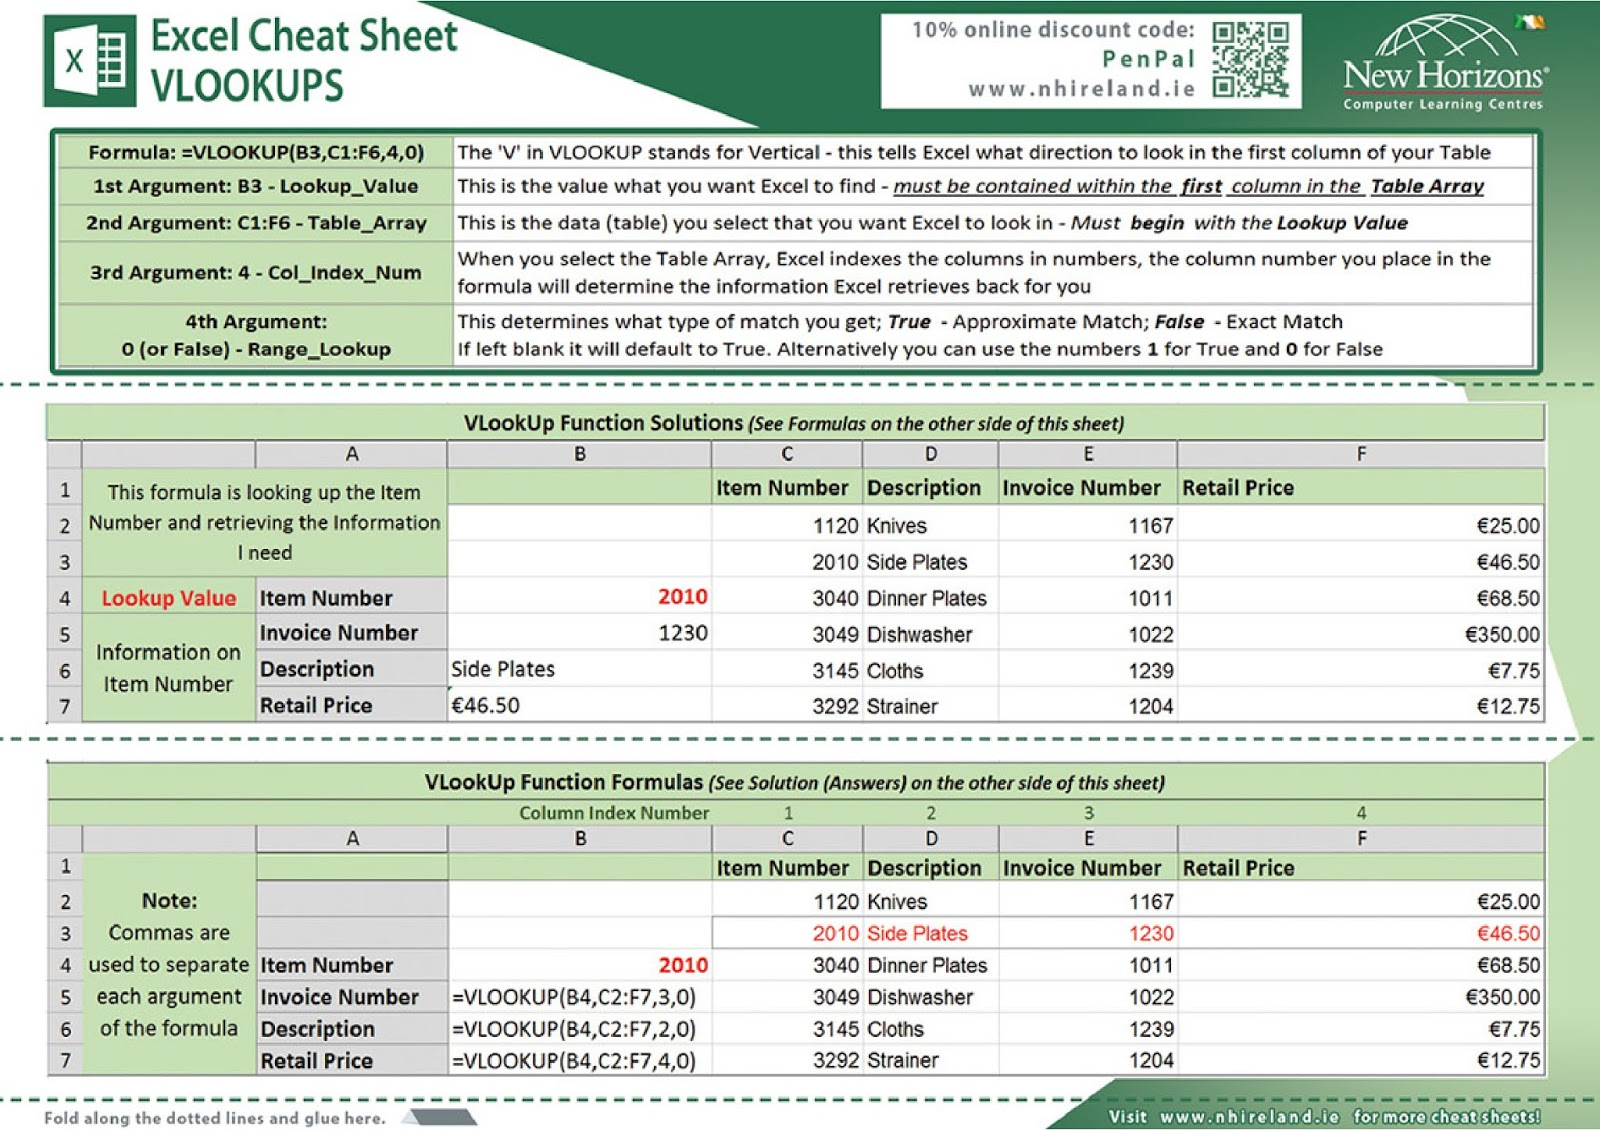 Our Best Excel Cheat Sheets Part 1